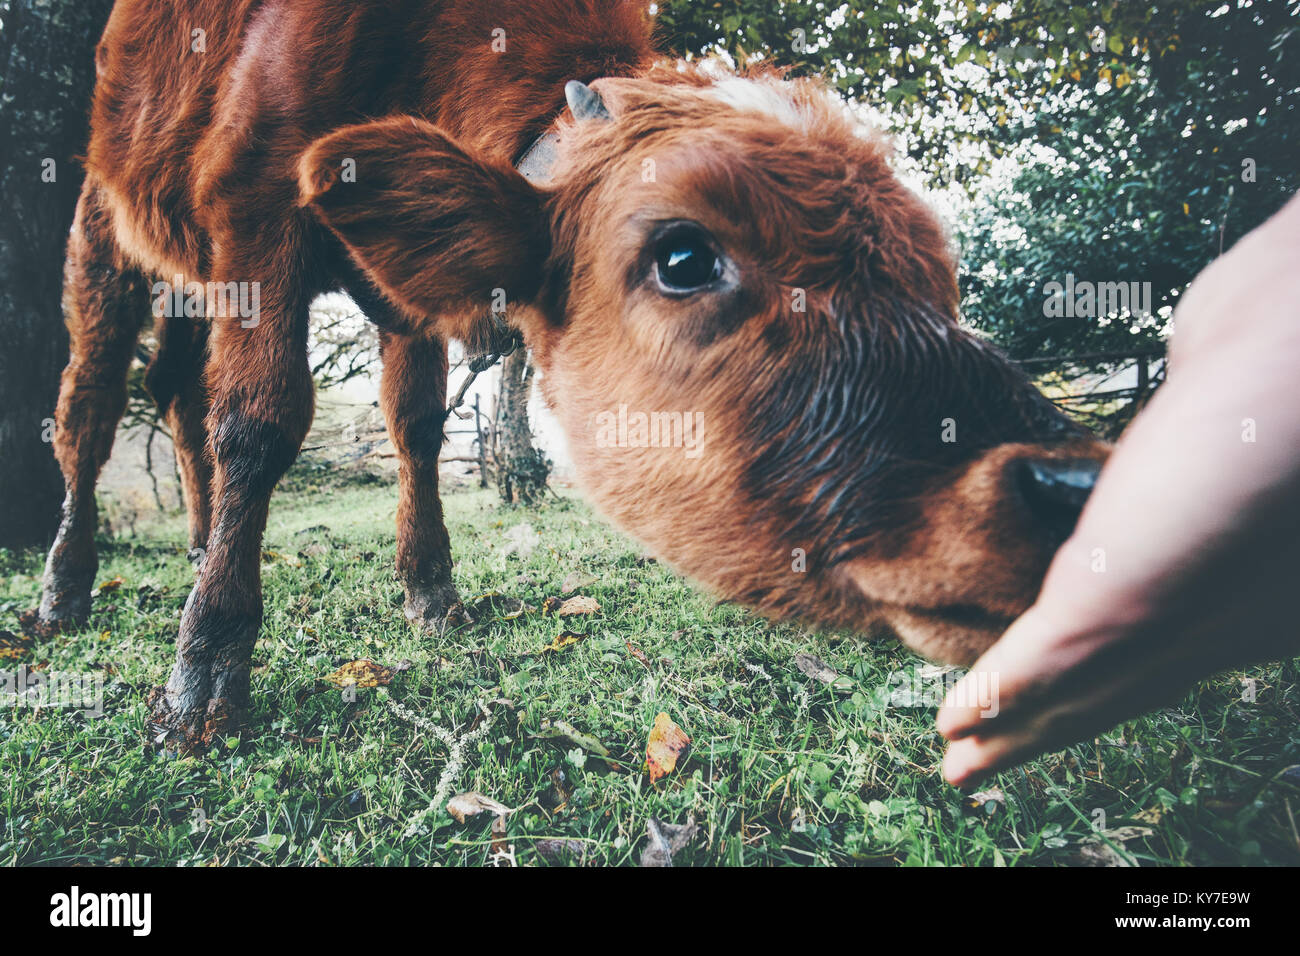 Cow calf eating from man hand funny Farm Animal at alpine green valley summer pasture - Stock Image